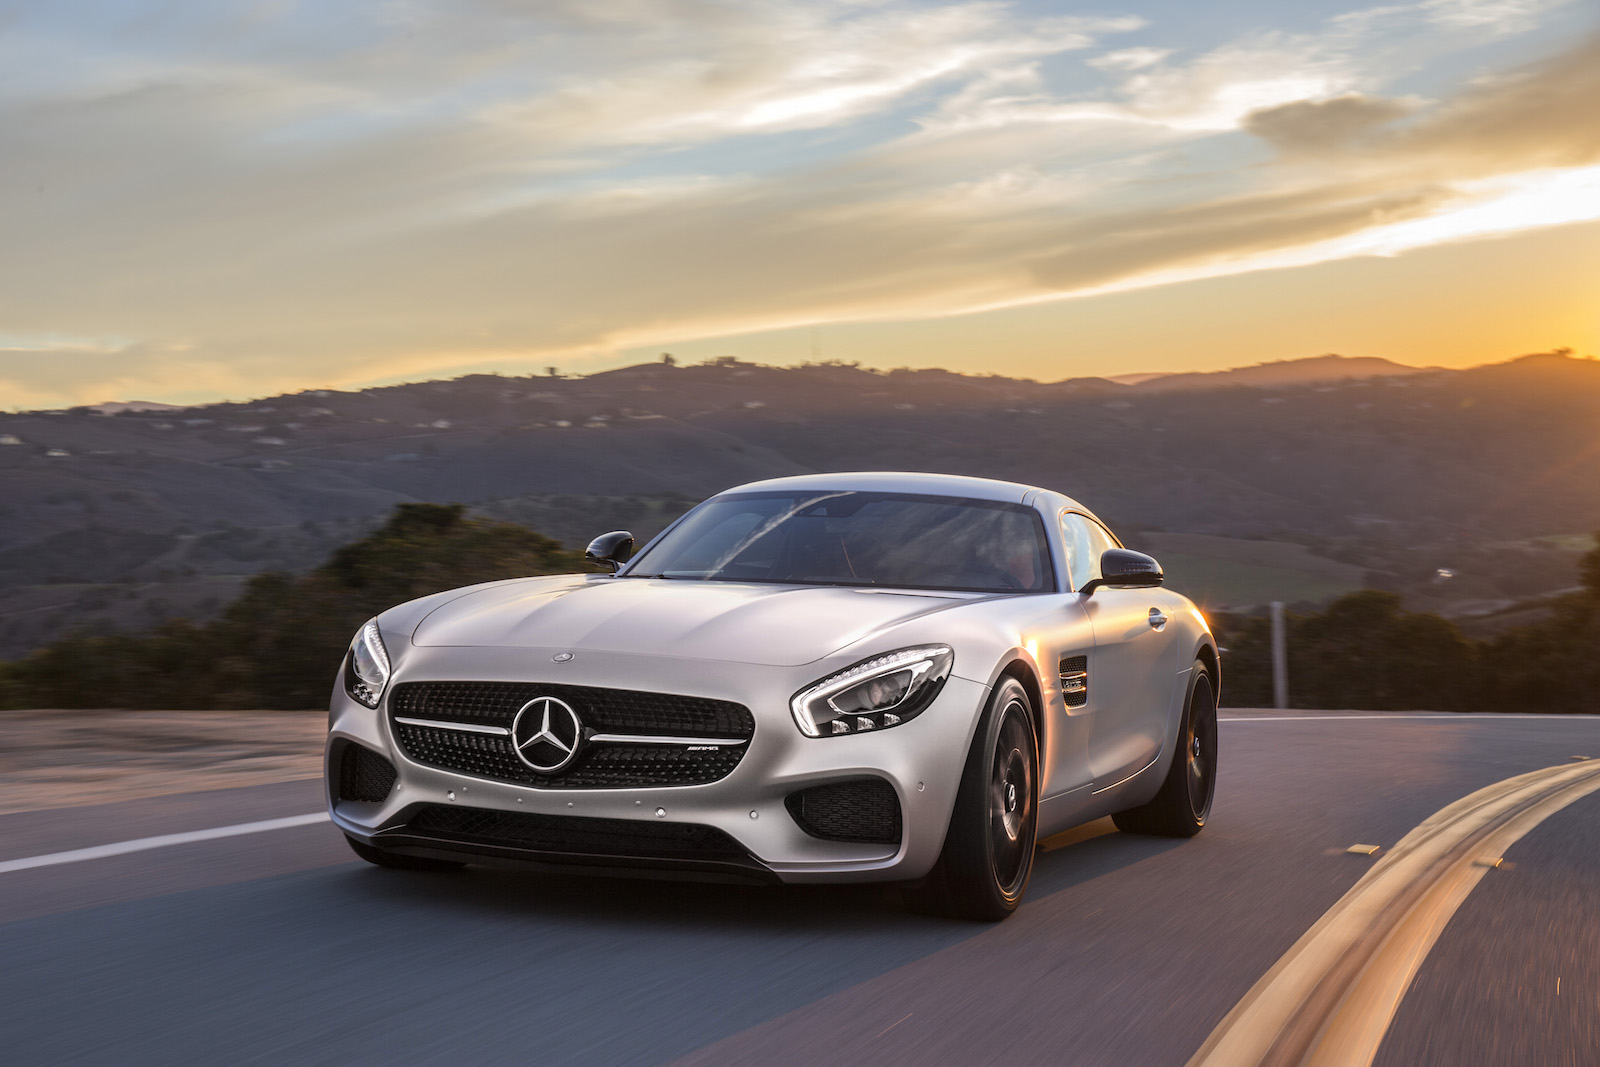 2016 mercedes benz amg gt review ratings specs prices for Www mercedes benz com connect